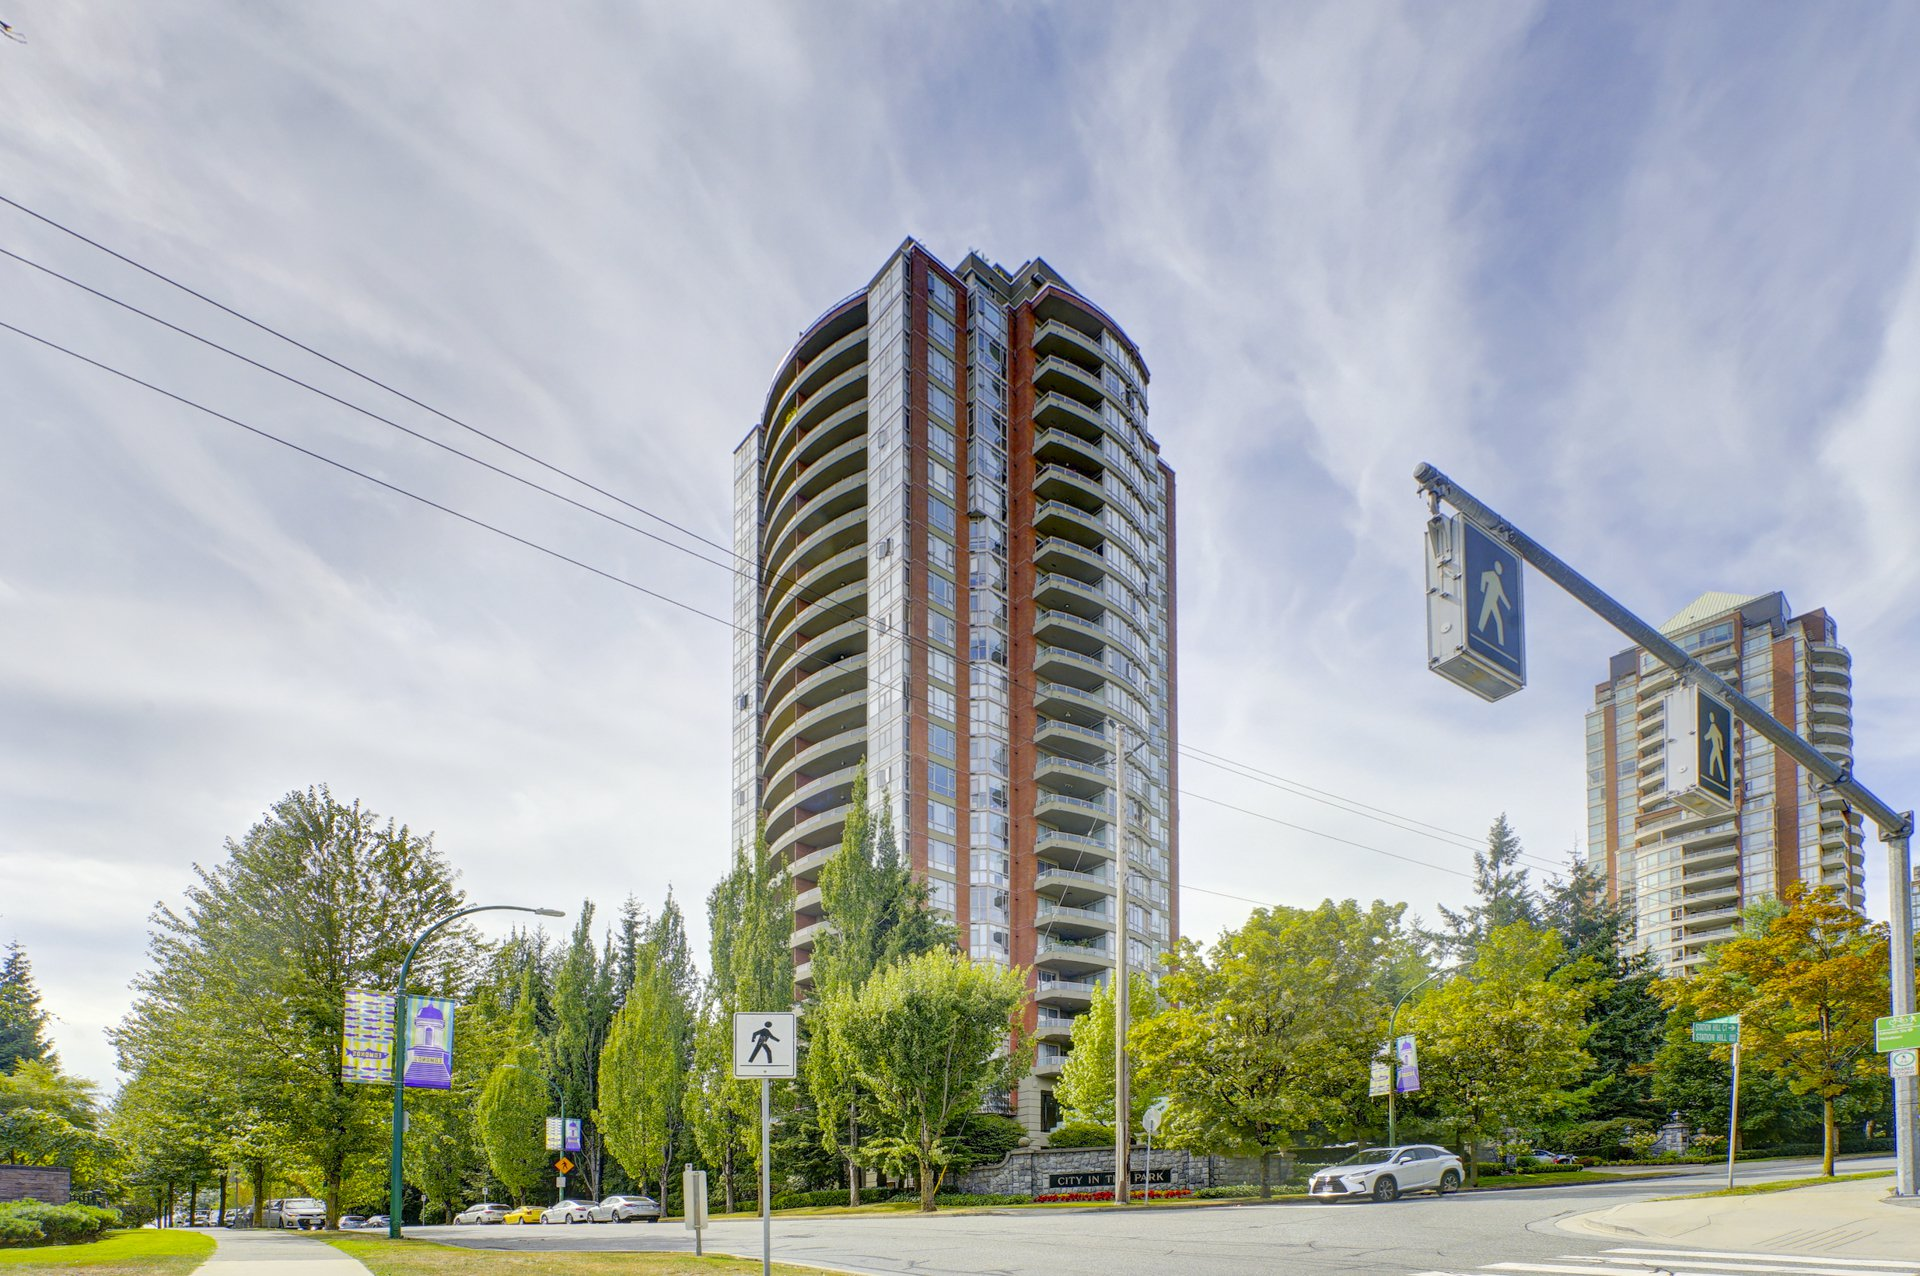 Main Photo: 2401 6888 STATION HILL DRIVE in Burnaby: South Slope Condo for sale (Burnaby South)  : MLS®# R2399550